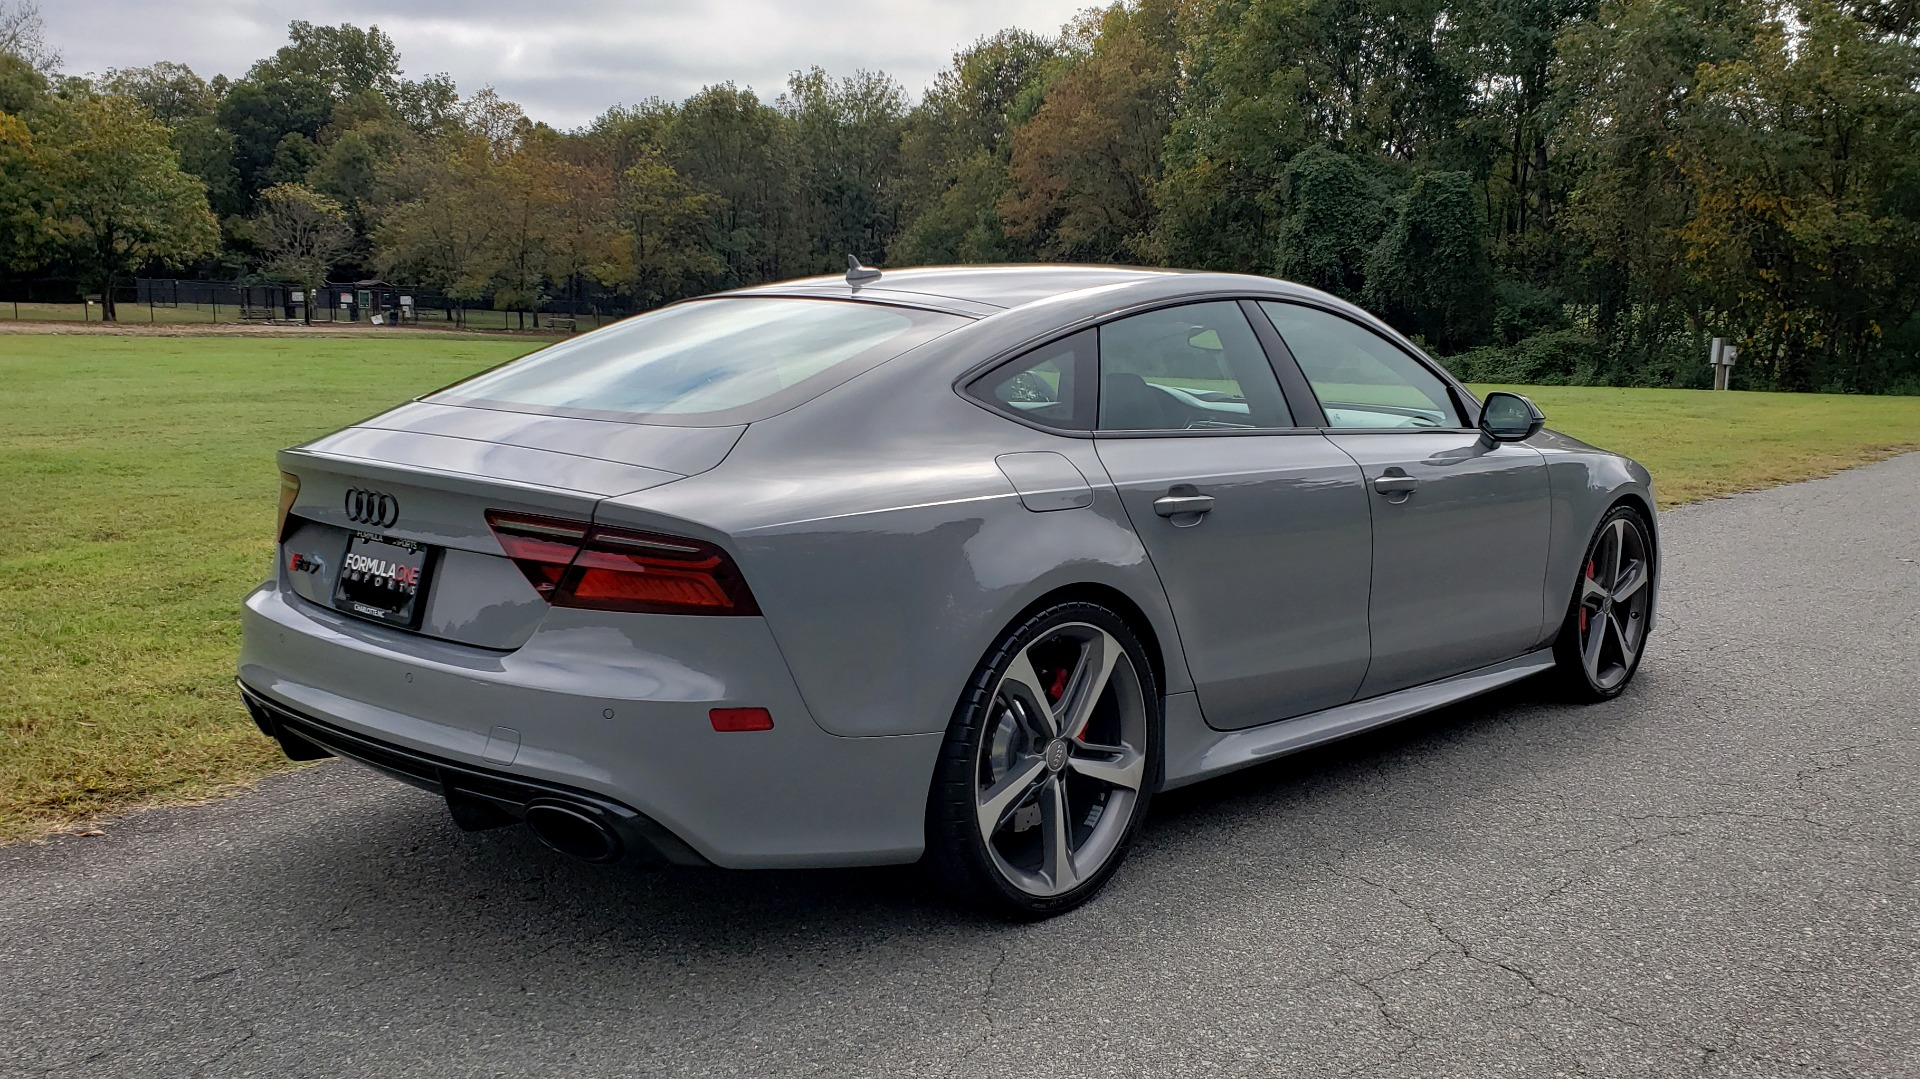 Used 2018 Audi RS 7 4.0T TIPTRONIC / CARBON OPTIC / DRVR ASST / NAV / REARVIEW for sale $91,625 at Formula One Imports in Charlotte NC 28227 3